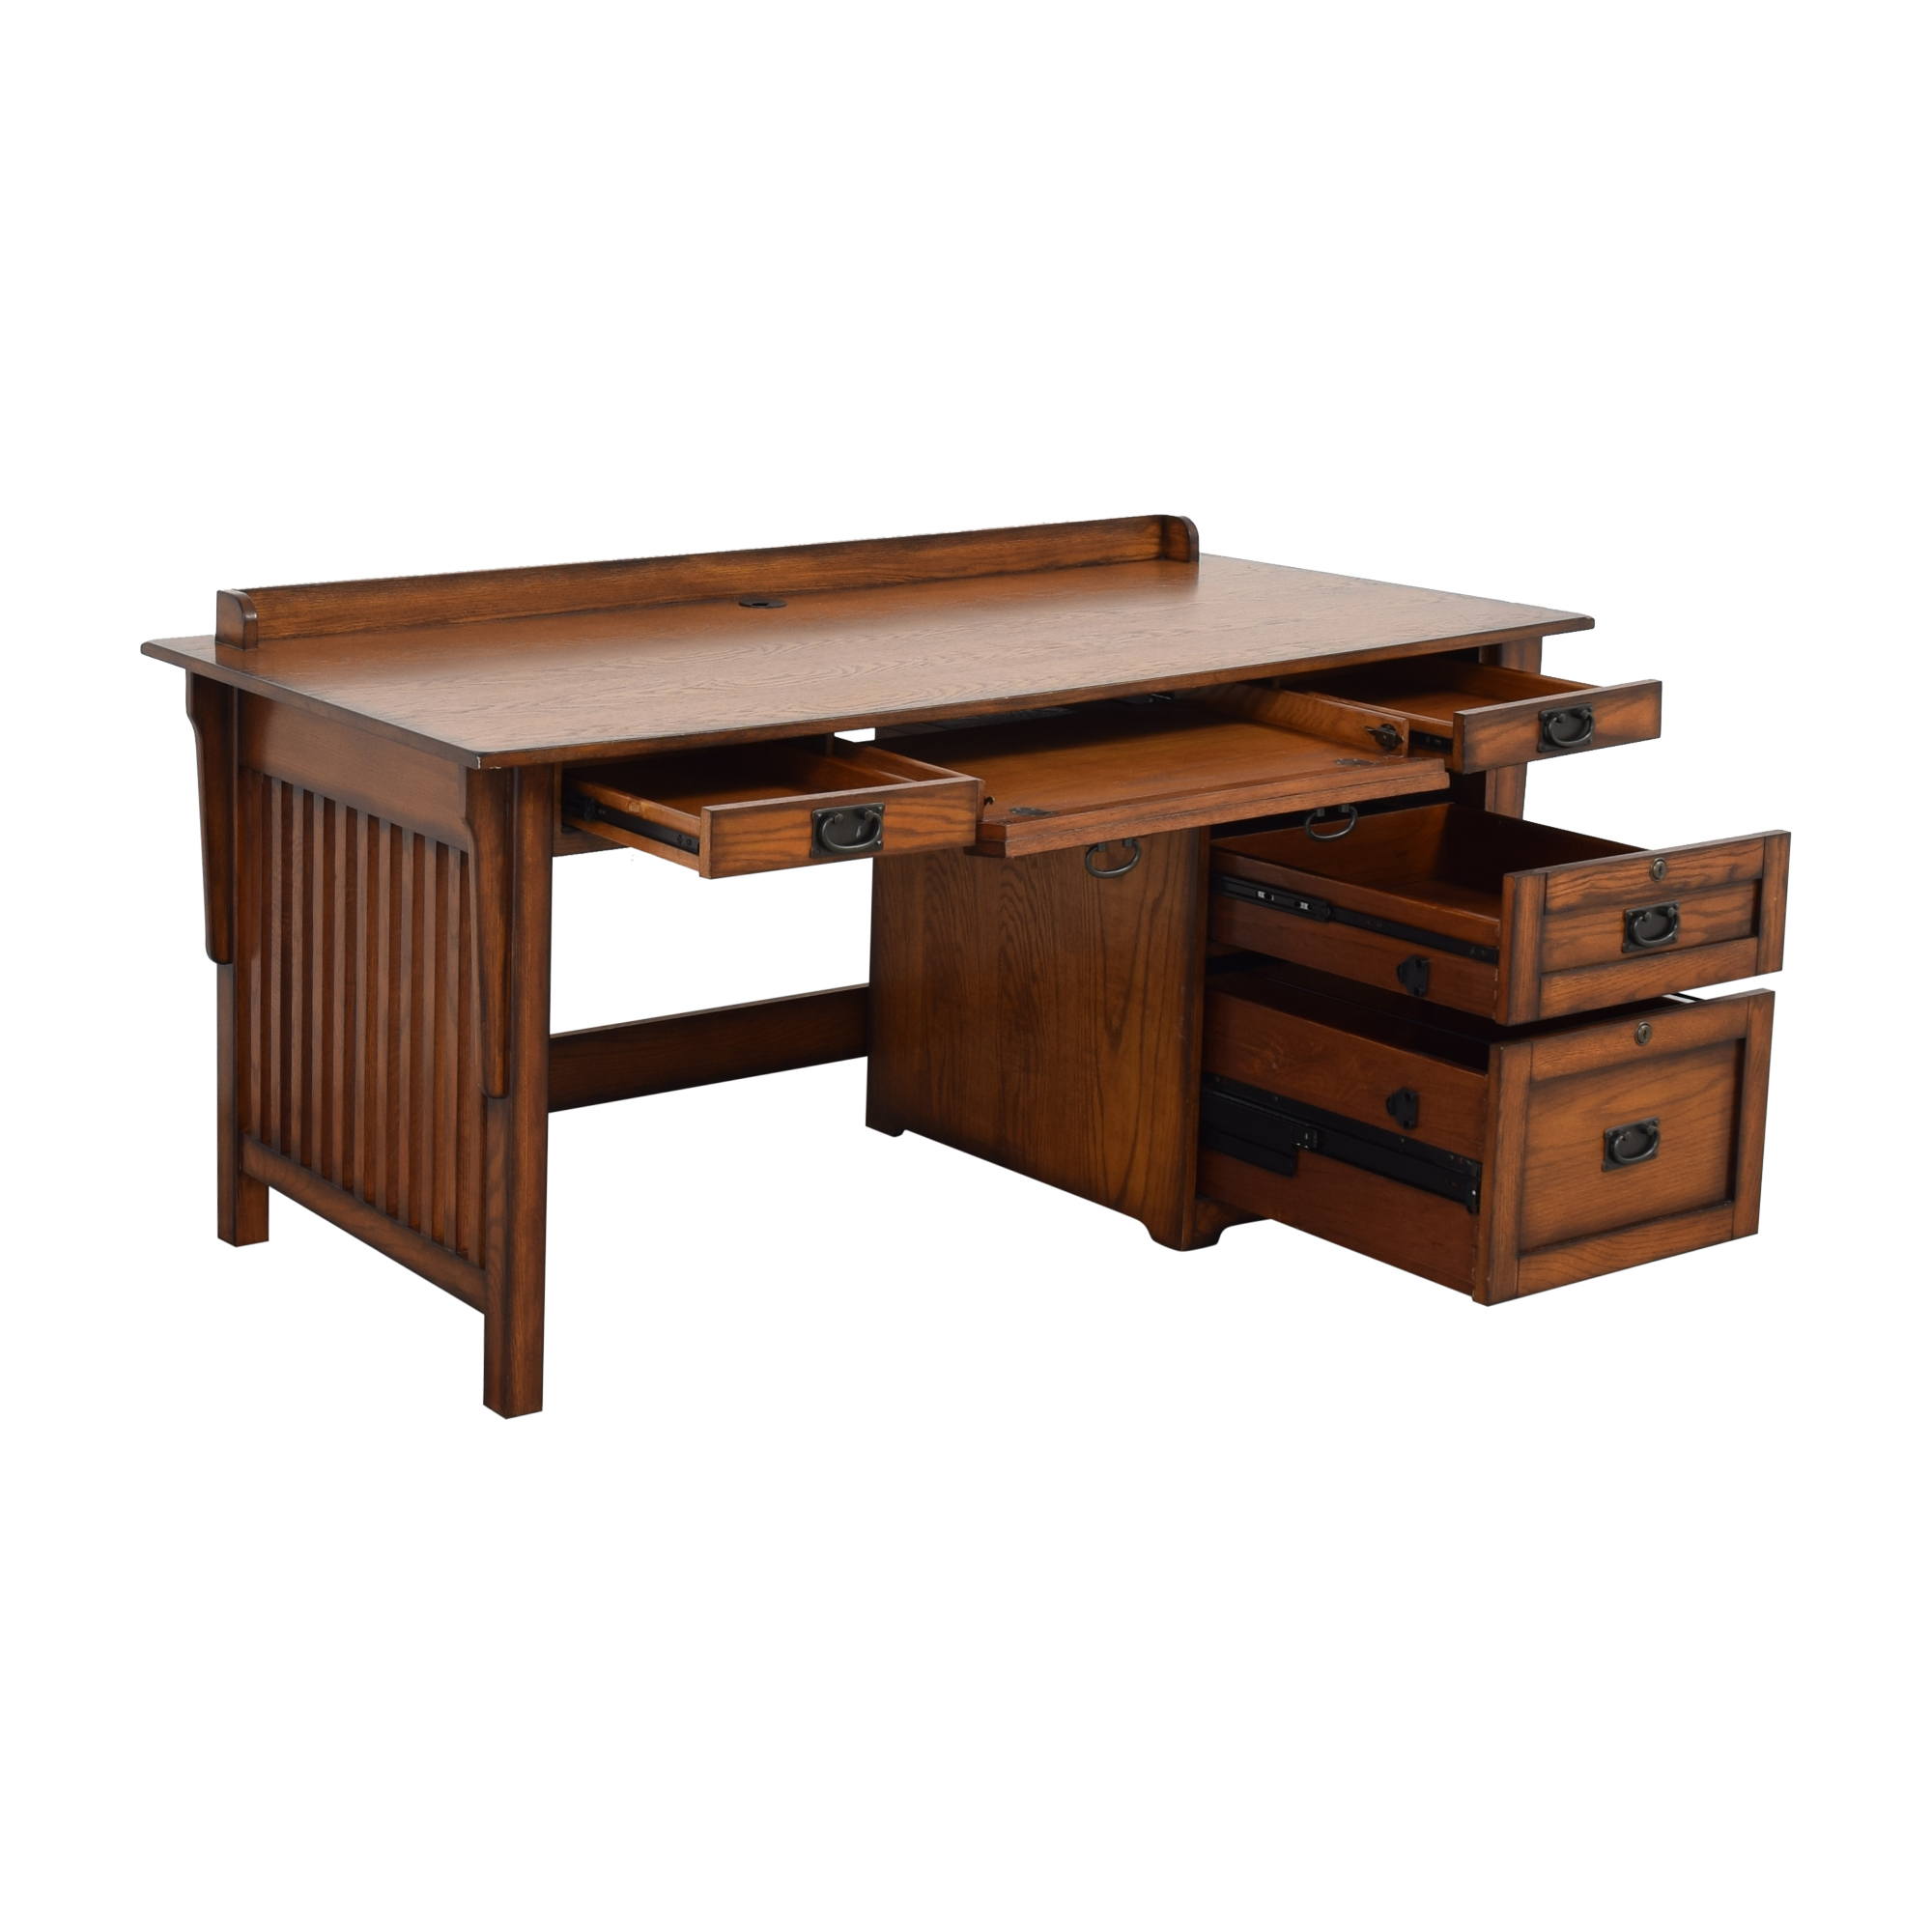 Hammary Furniture Sedona Desk and File Cabinet / Tables